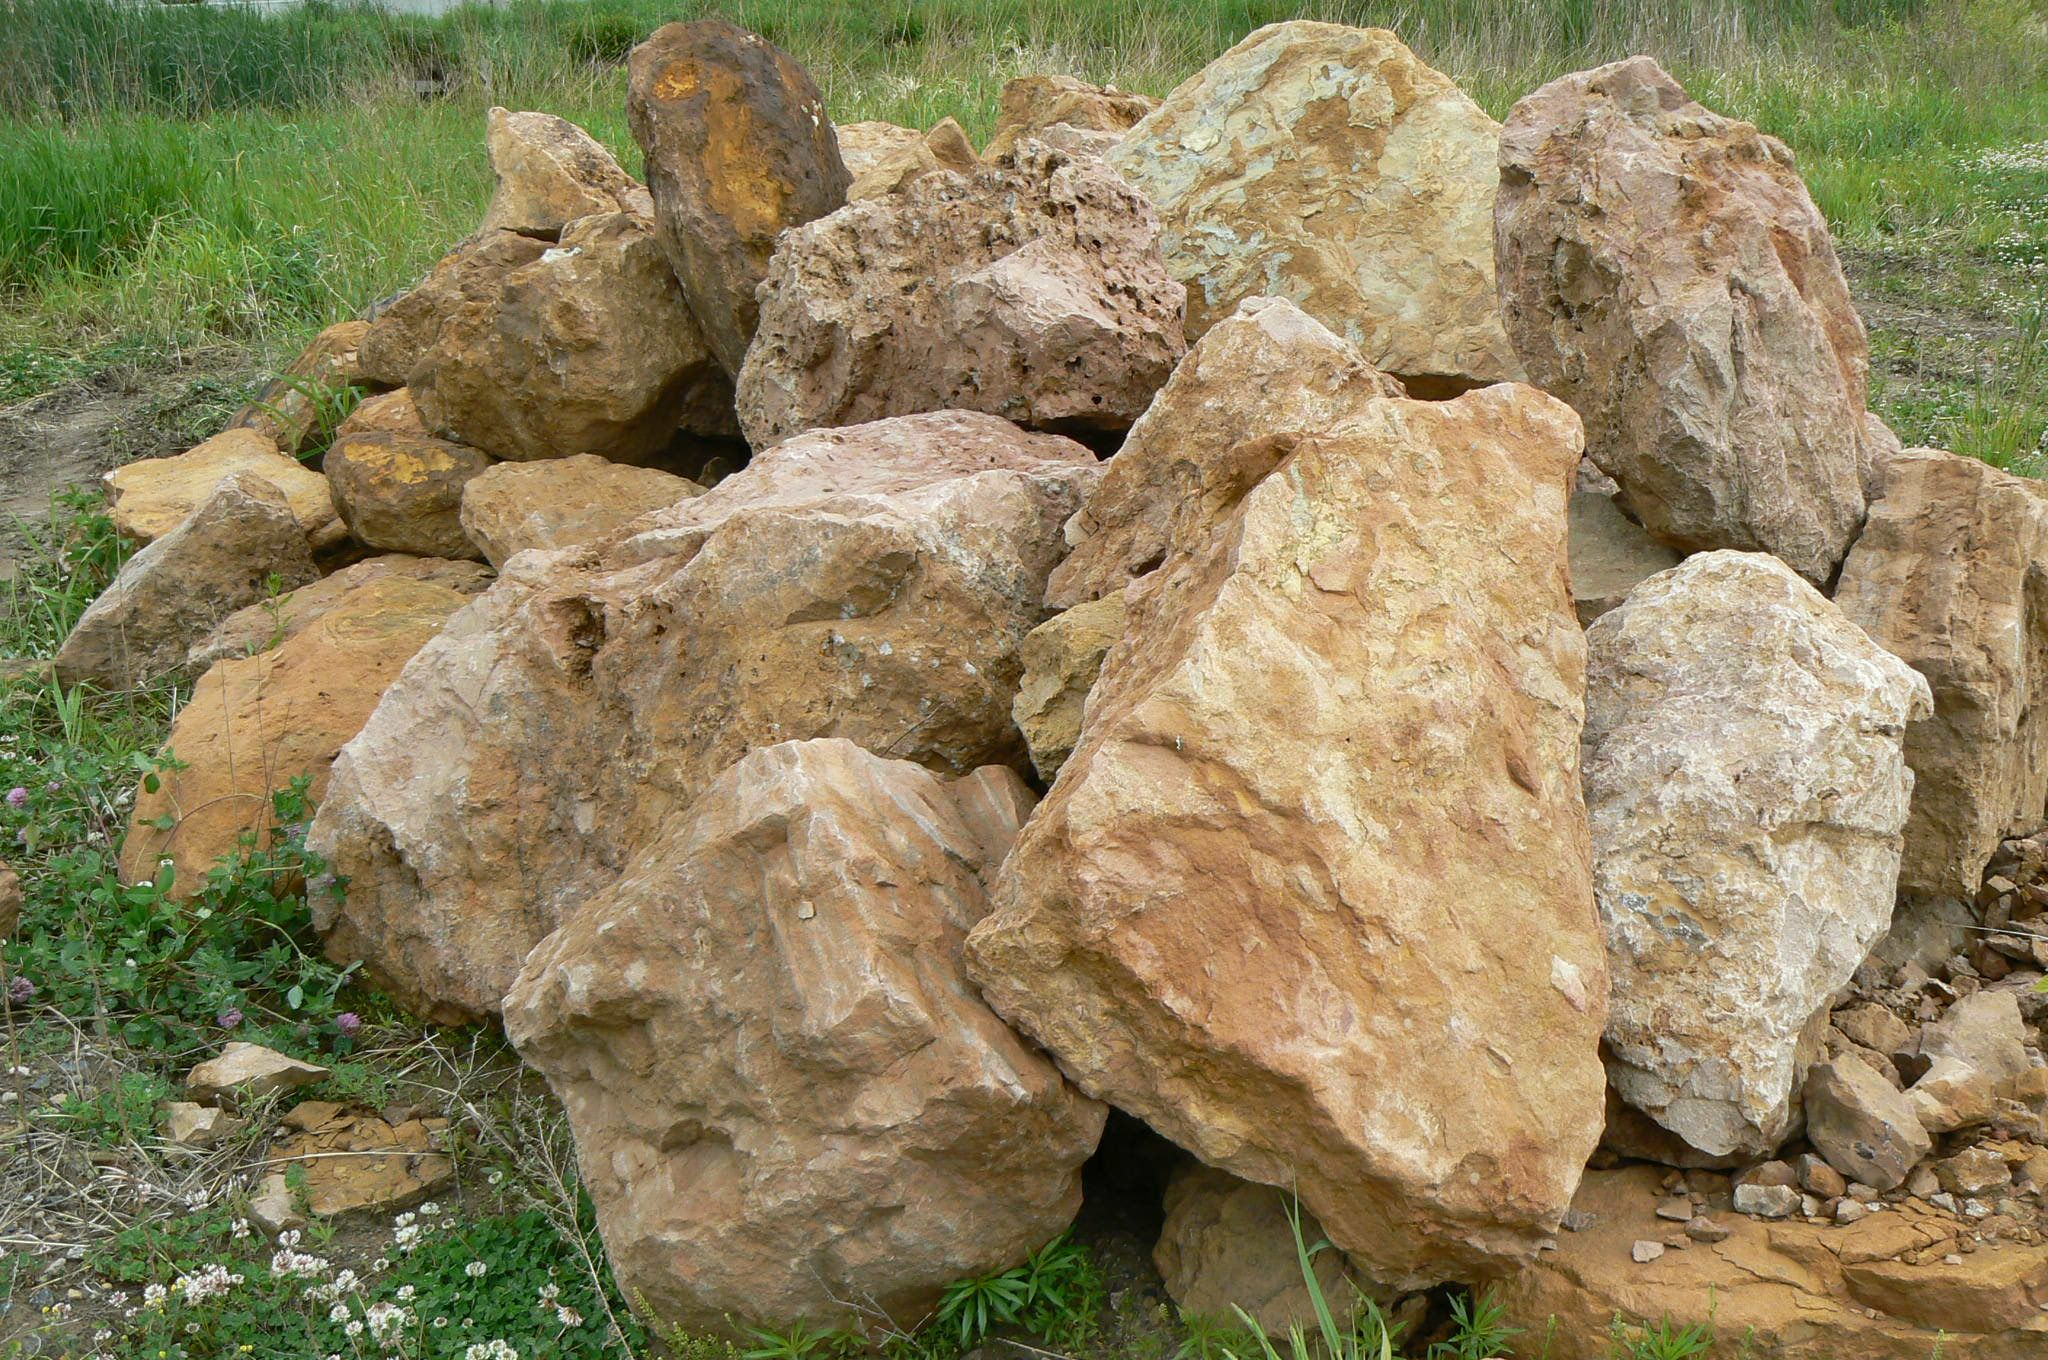 Landscaping Rocks And Boulders : Rocks and boulders google search more rock